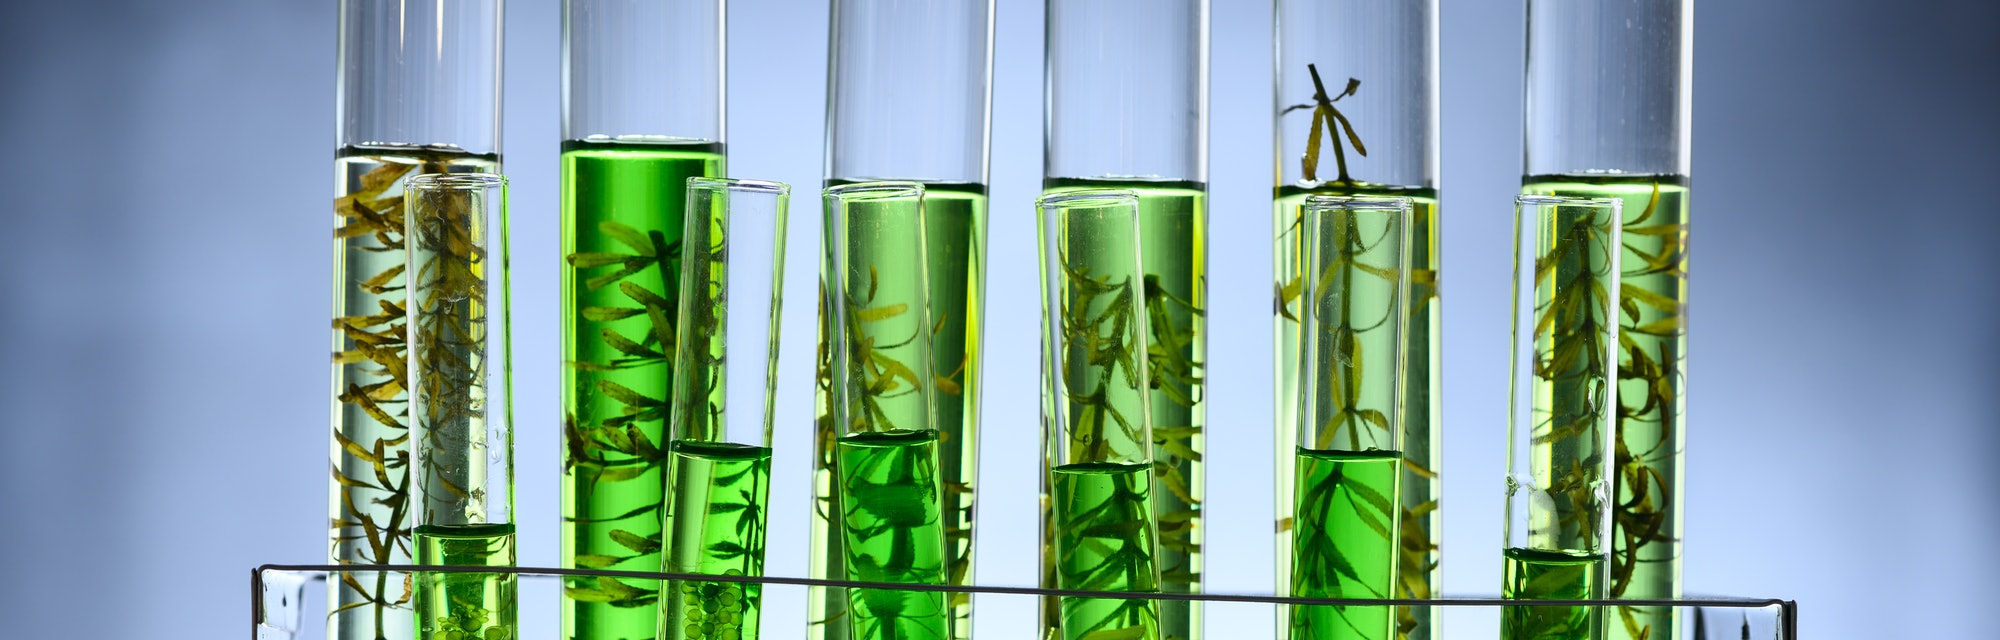 algae biofuel tube in biotech laboratory, Photobioreactor in lab algae fuel biofuel industry